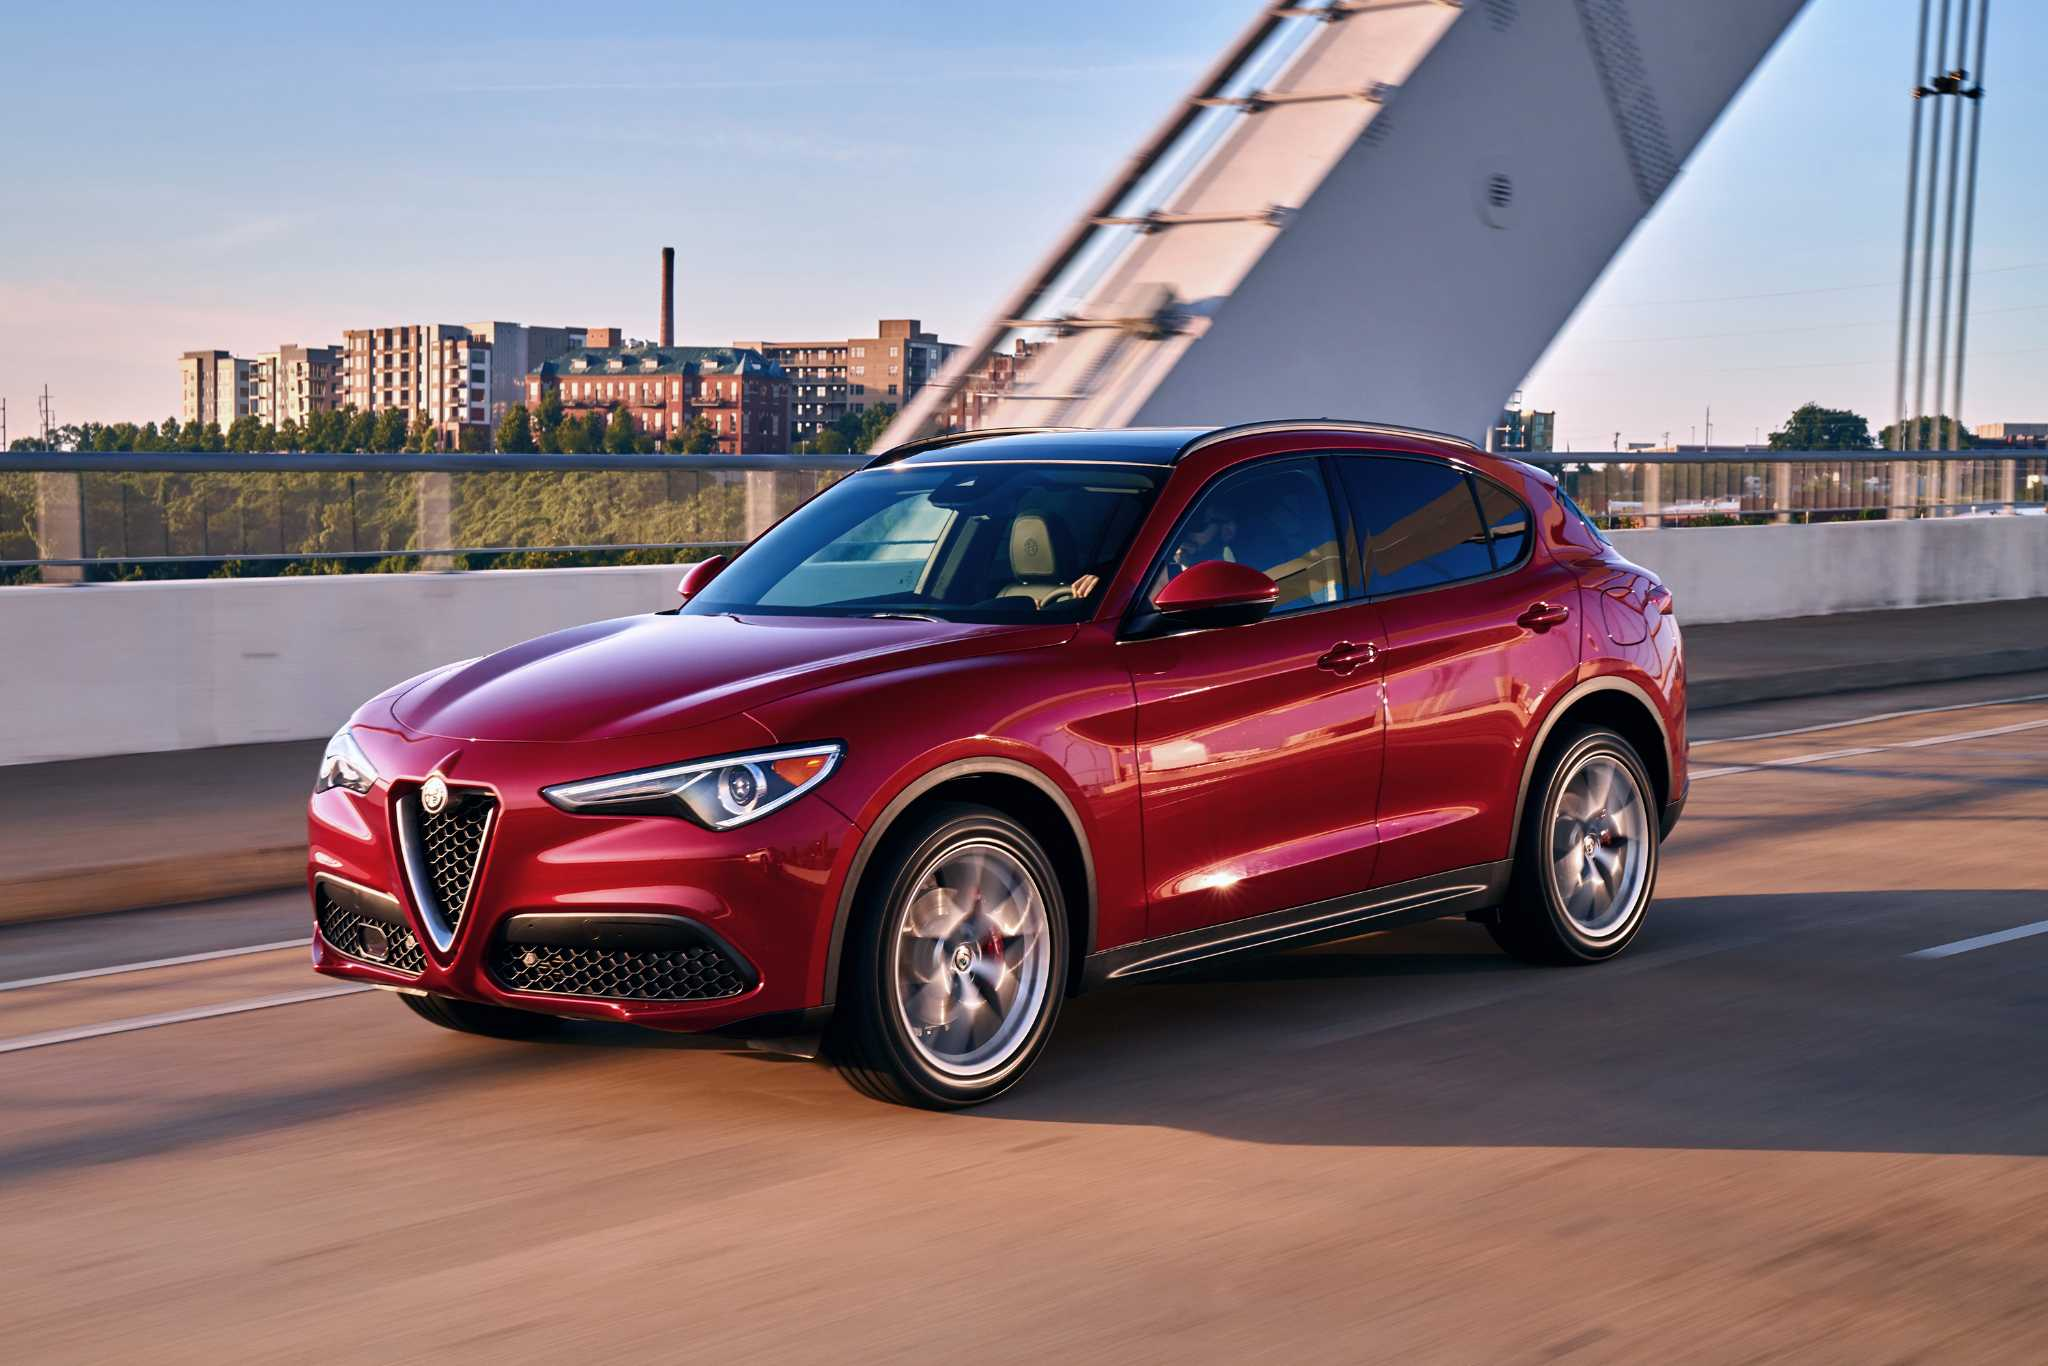 ALFA'S ALPHA CUV: 'Best in class' is usually a cliché, but for the 2018 Stelvio, it's no brag, just fact